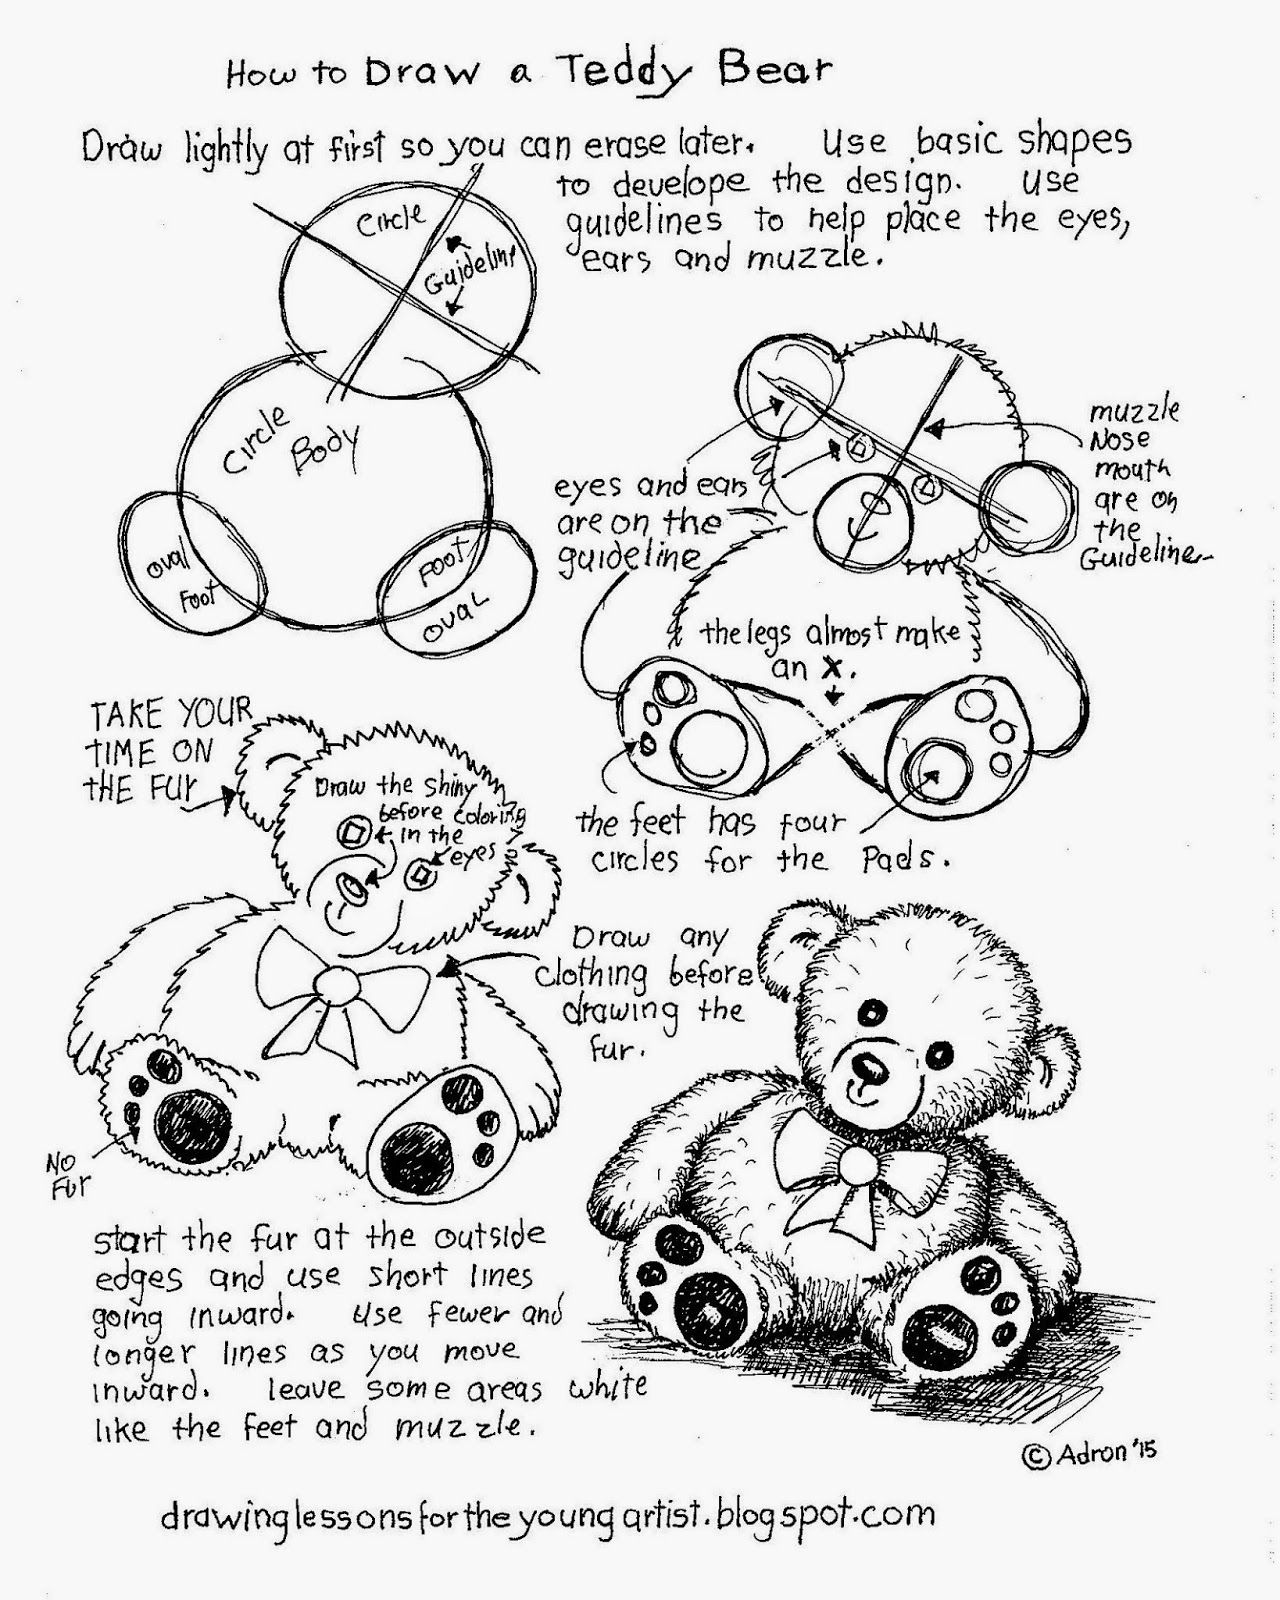 How To Draw A Teddy Bear Free Printable Worksheet